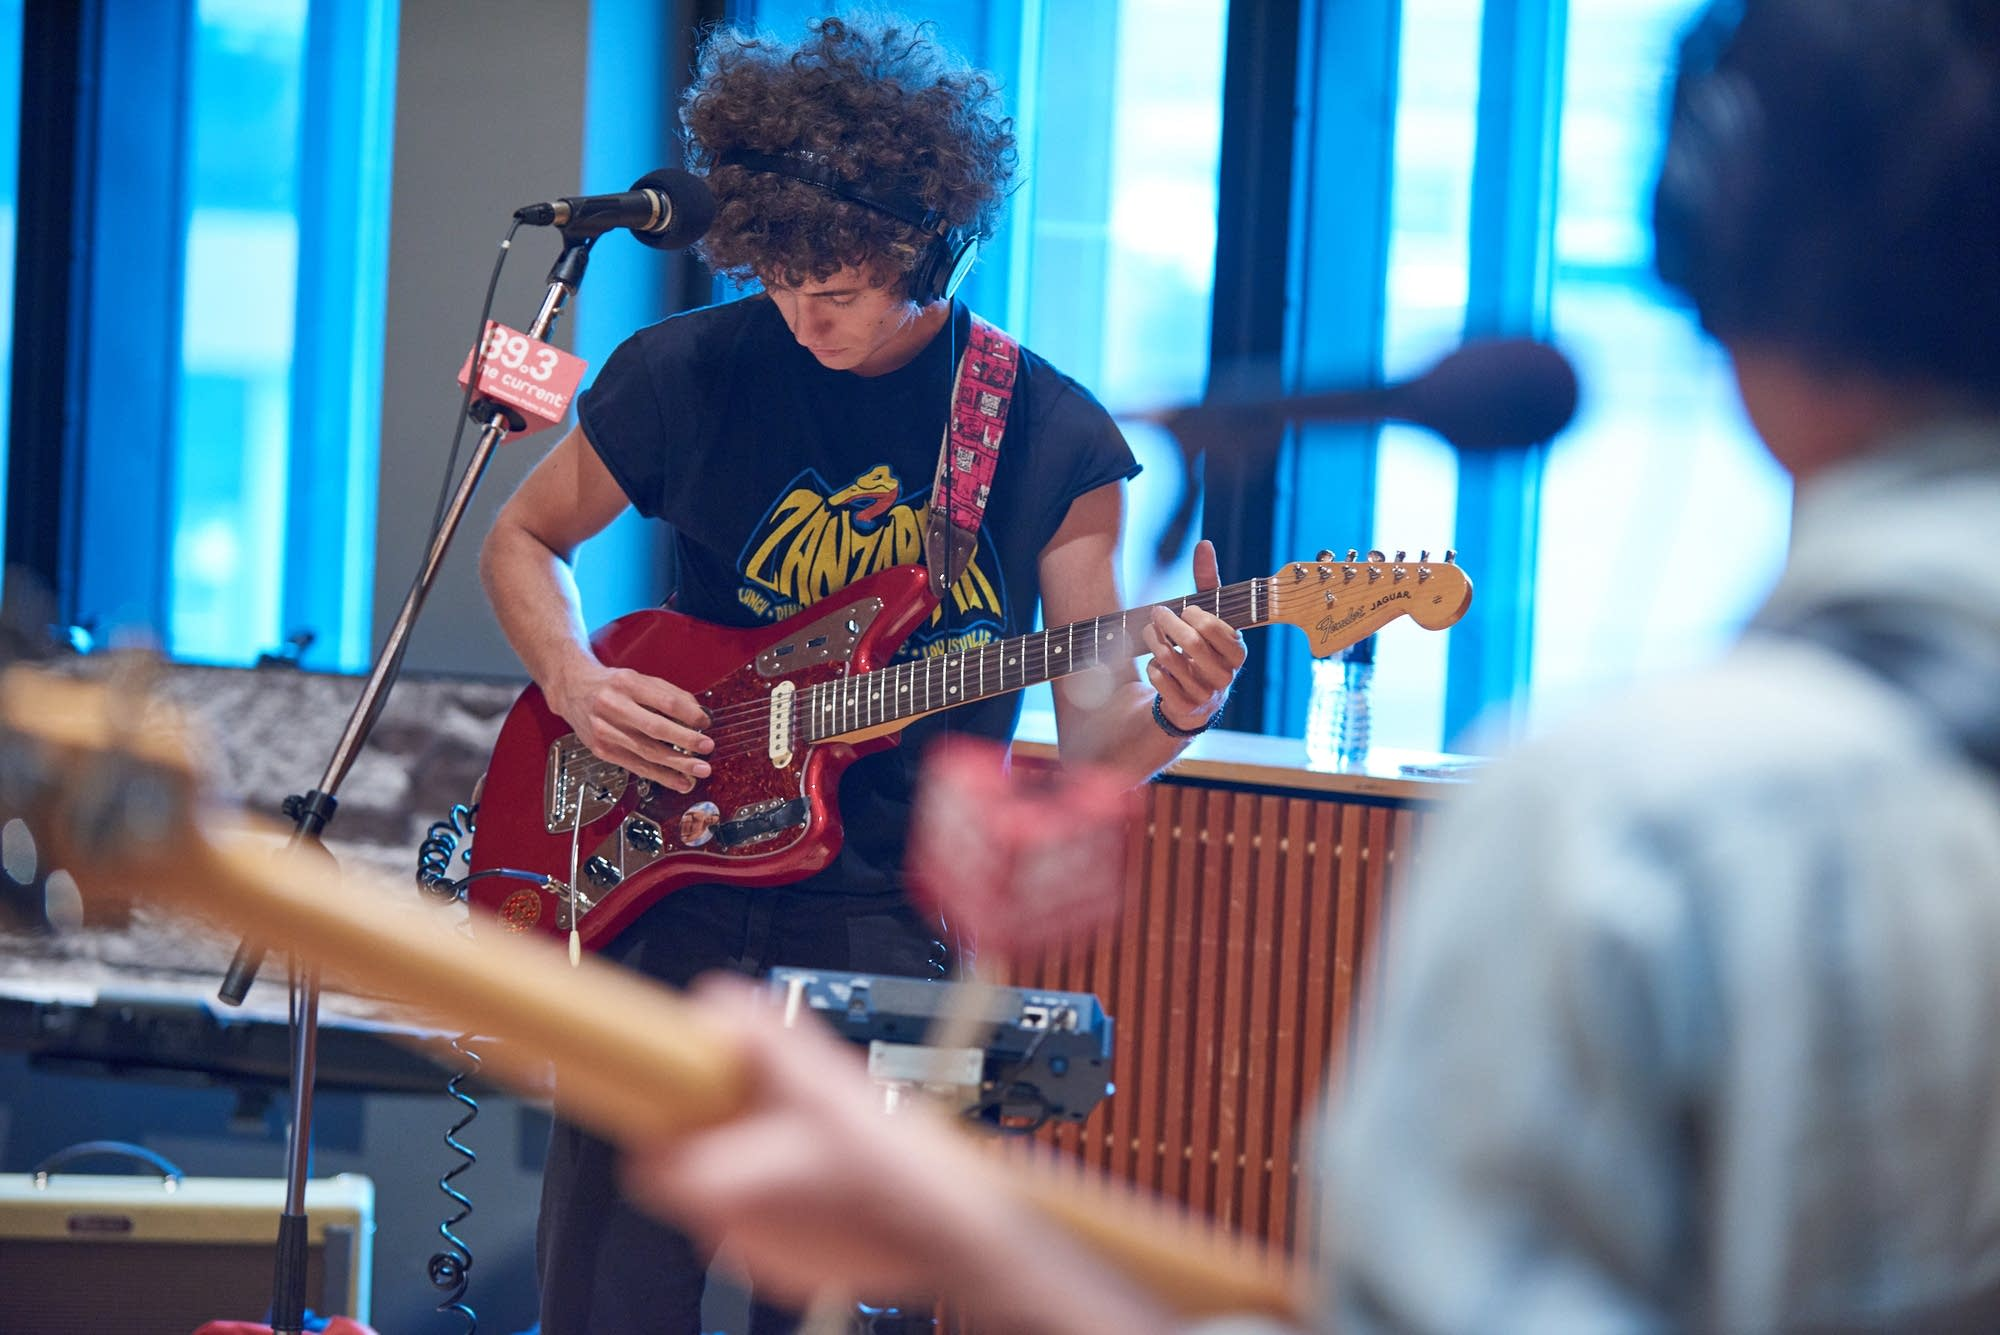 Ron Gallo performs in The Current studio